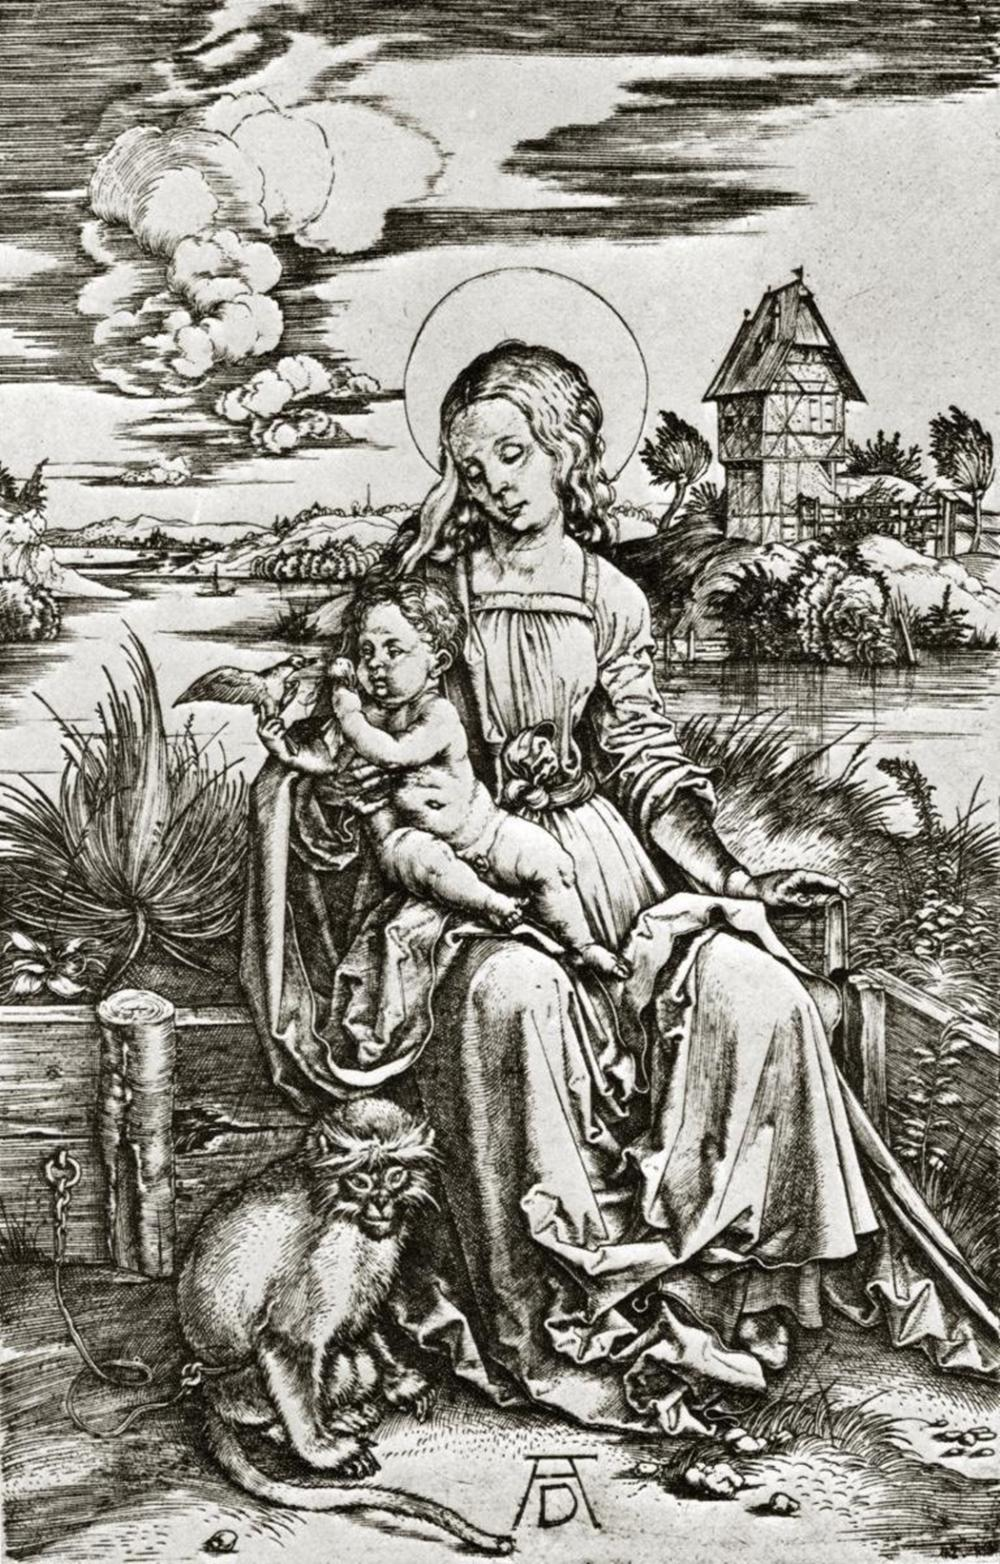 ALBRECHT DURER THE VIRGIN MARY WITH THE MONKEY